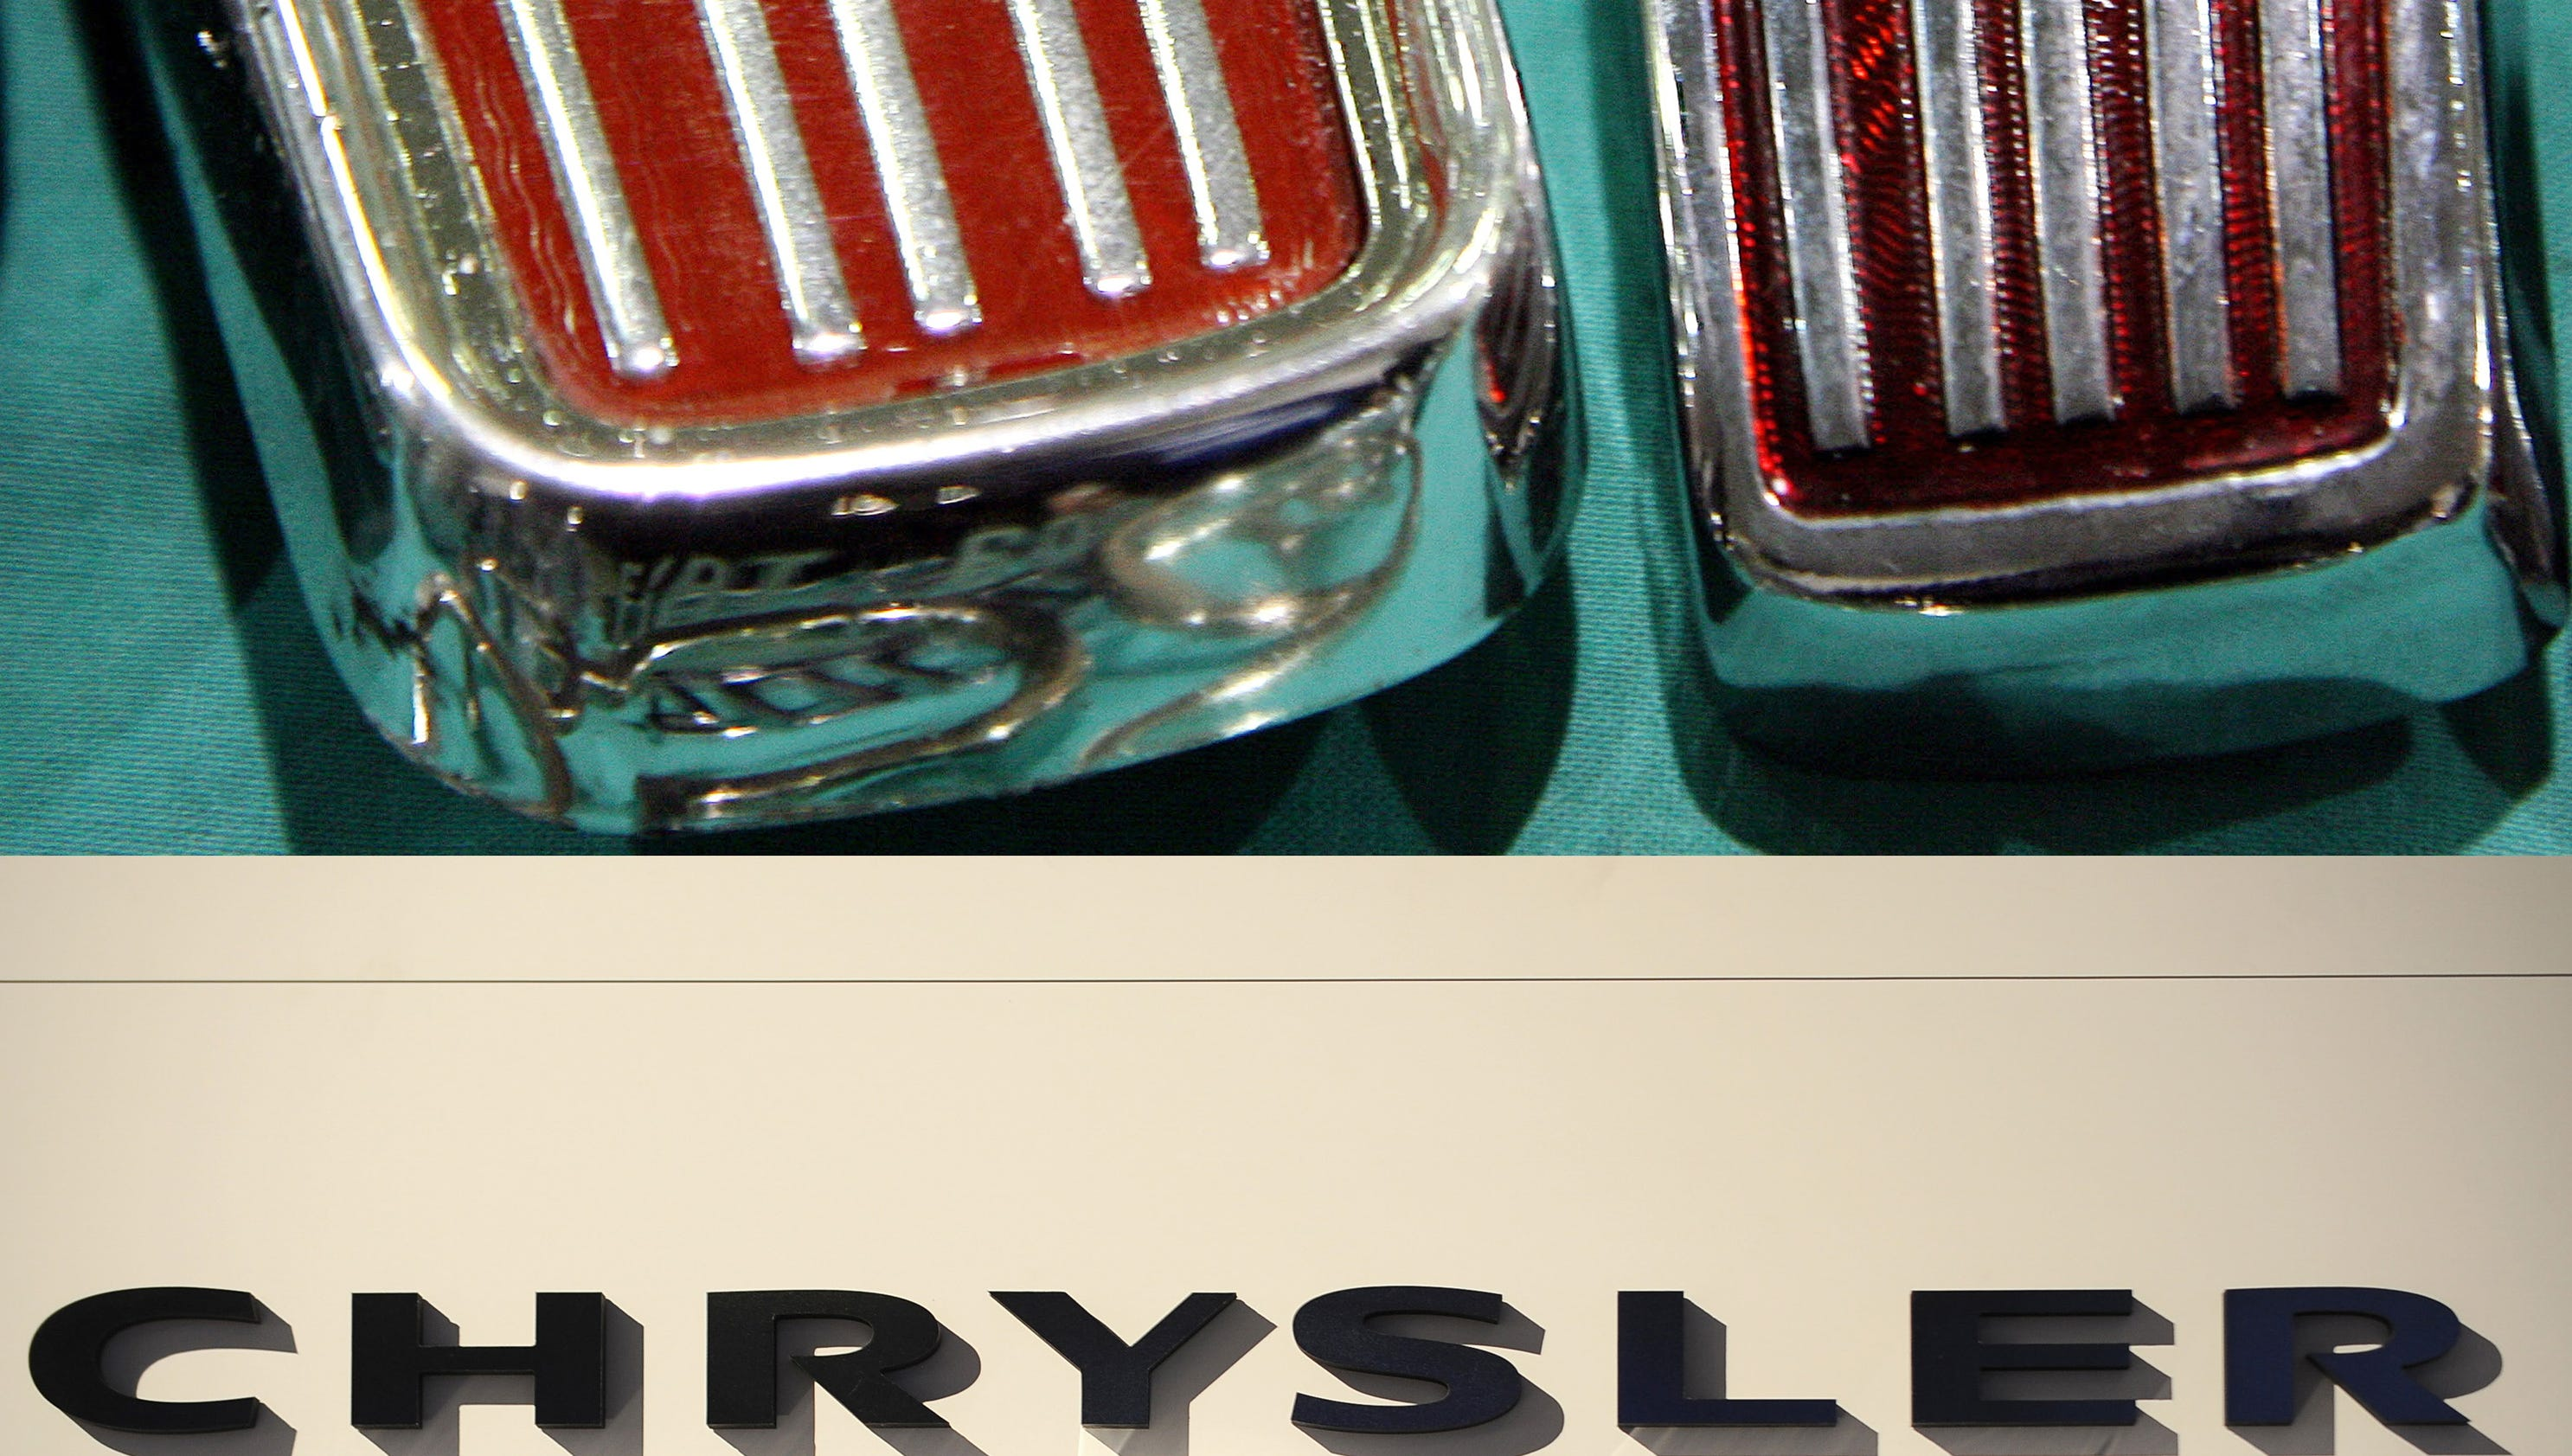 Fiat chrysler automobiles is new name stock on nyse fiat chrysler automobiles is new name stock on nyse biocorpaavc